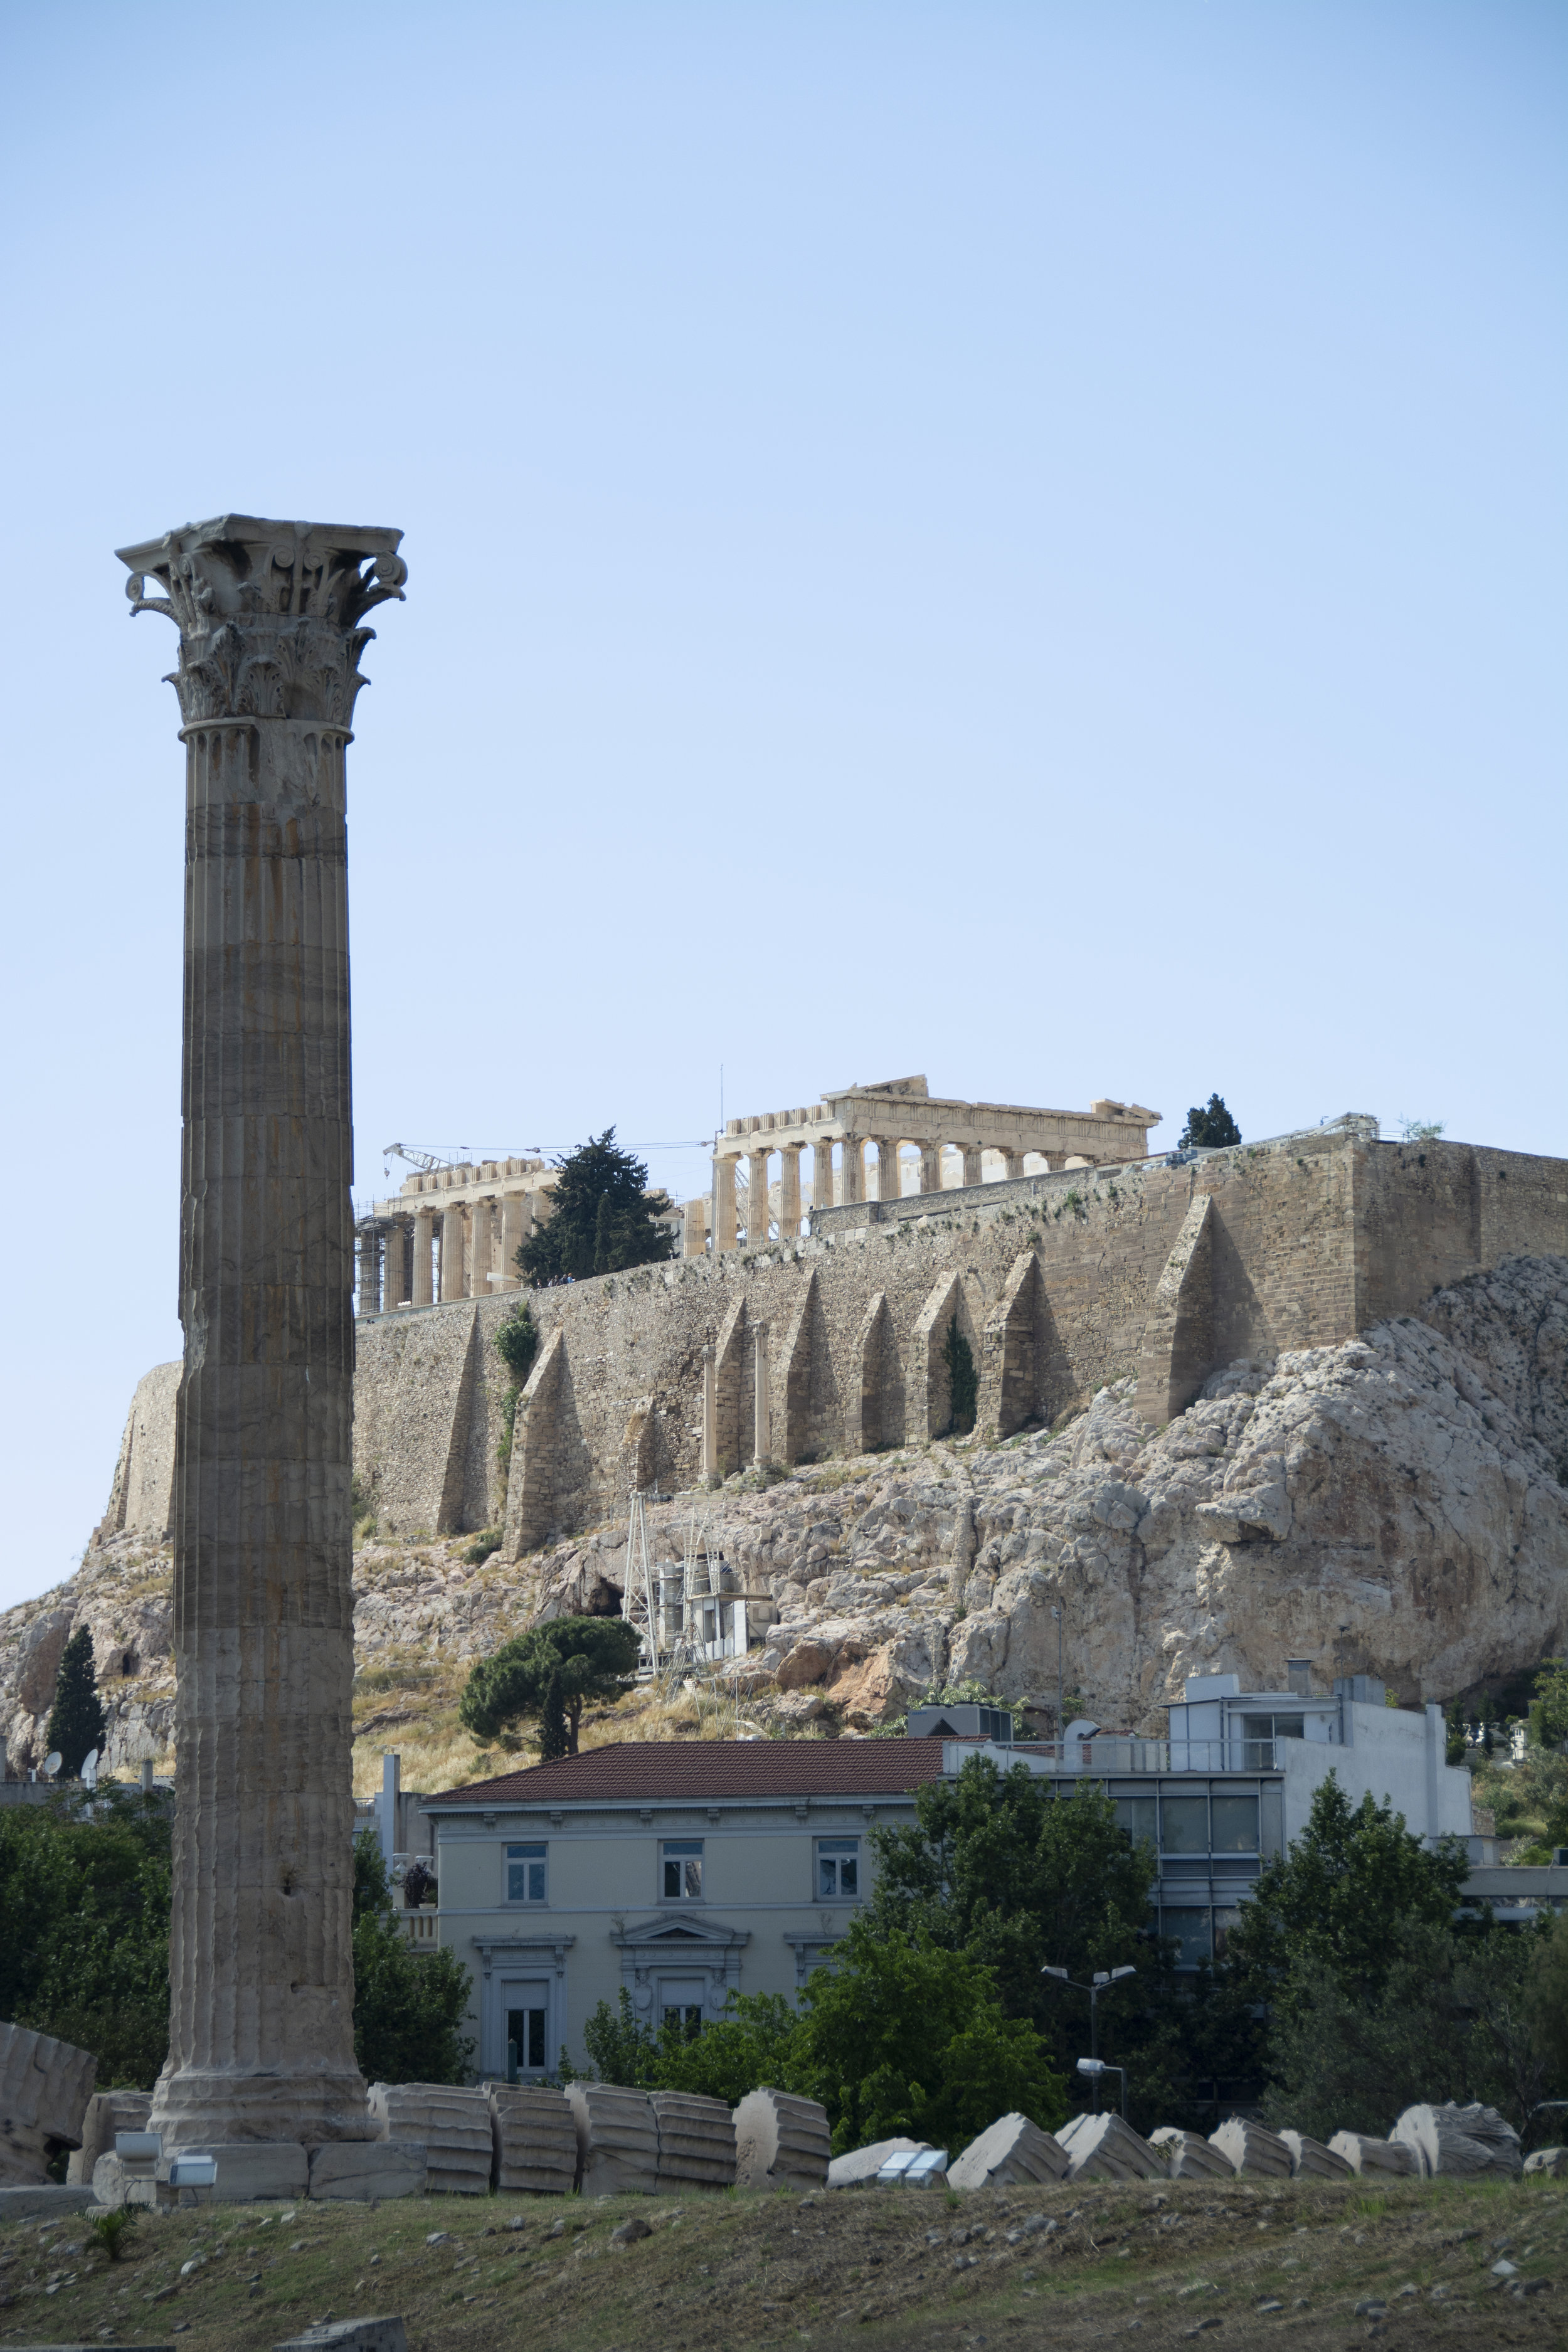 Remains of the Parthenon